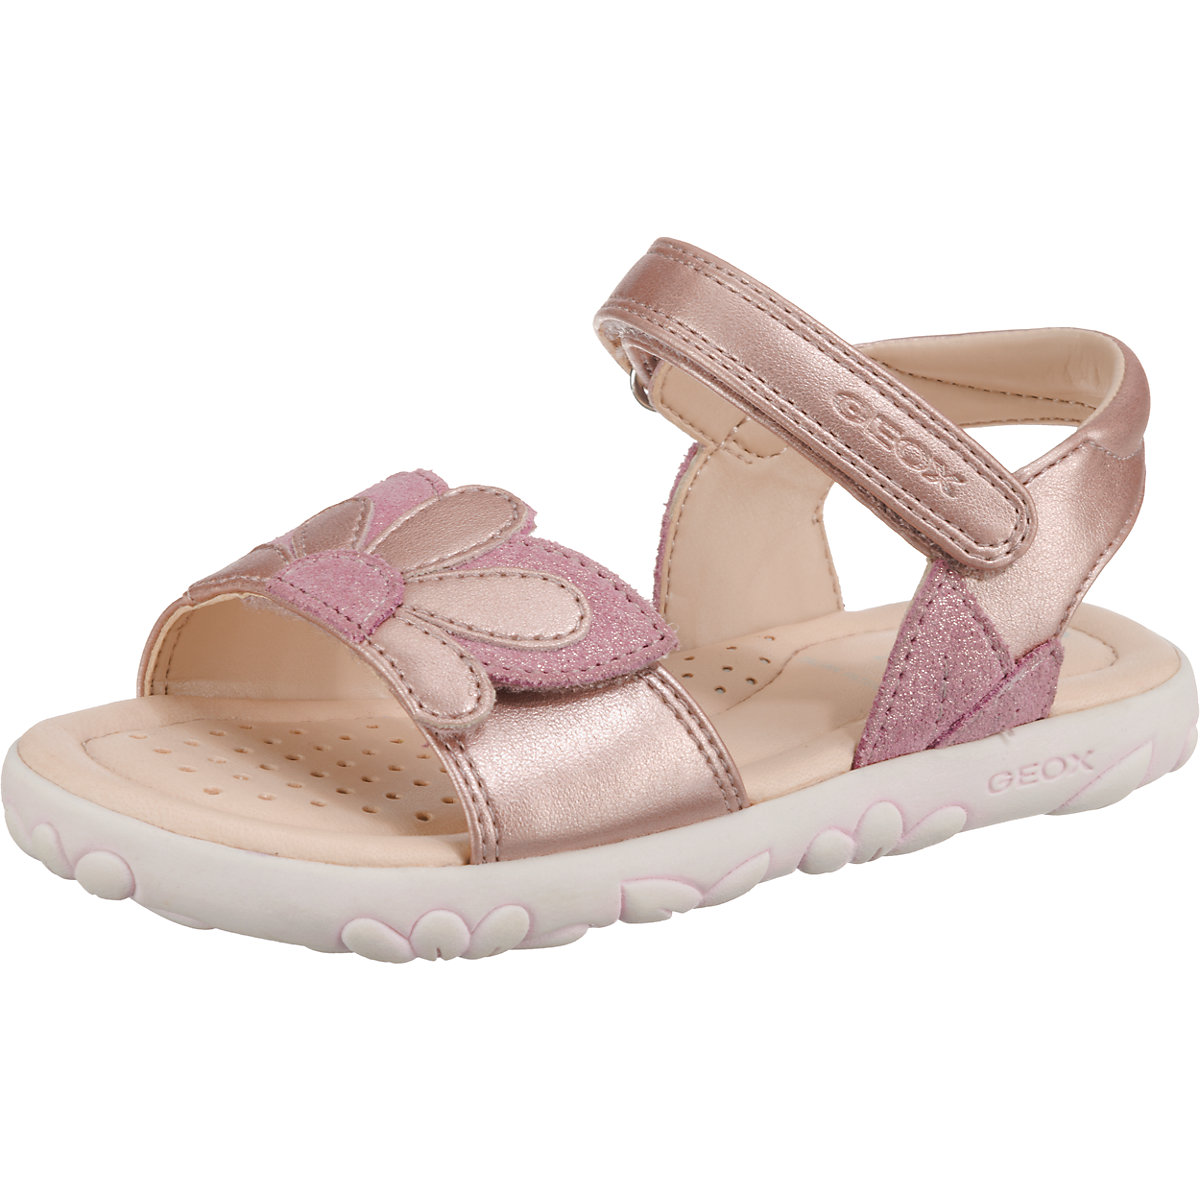 GEOX Sandals 10185312 children's shoes comfortable and light girls and boys sandals adidas s74649 sports and entertainment for boys